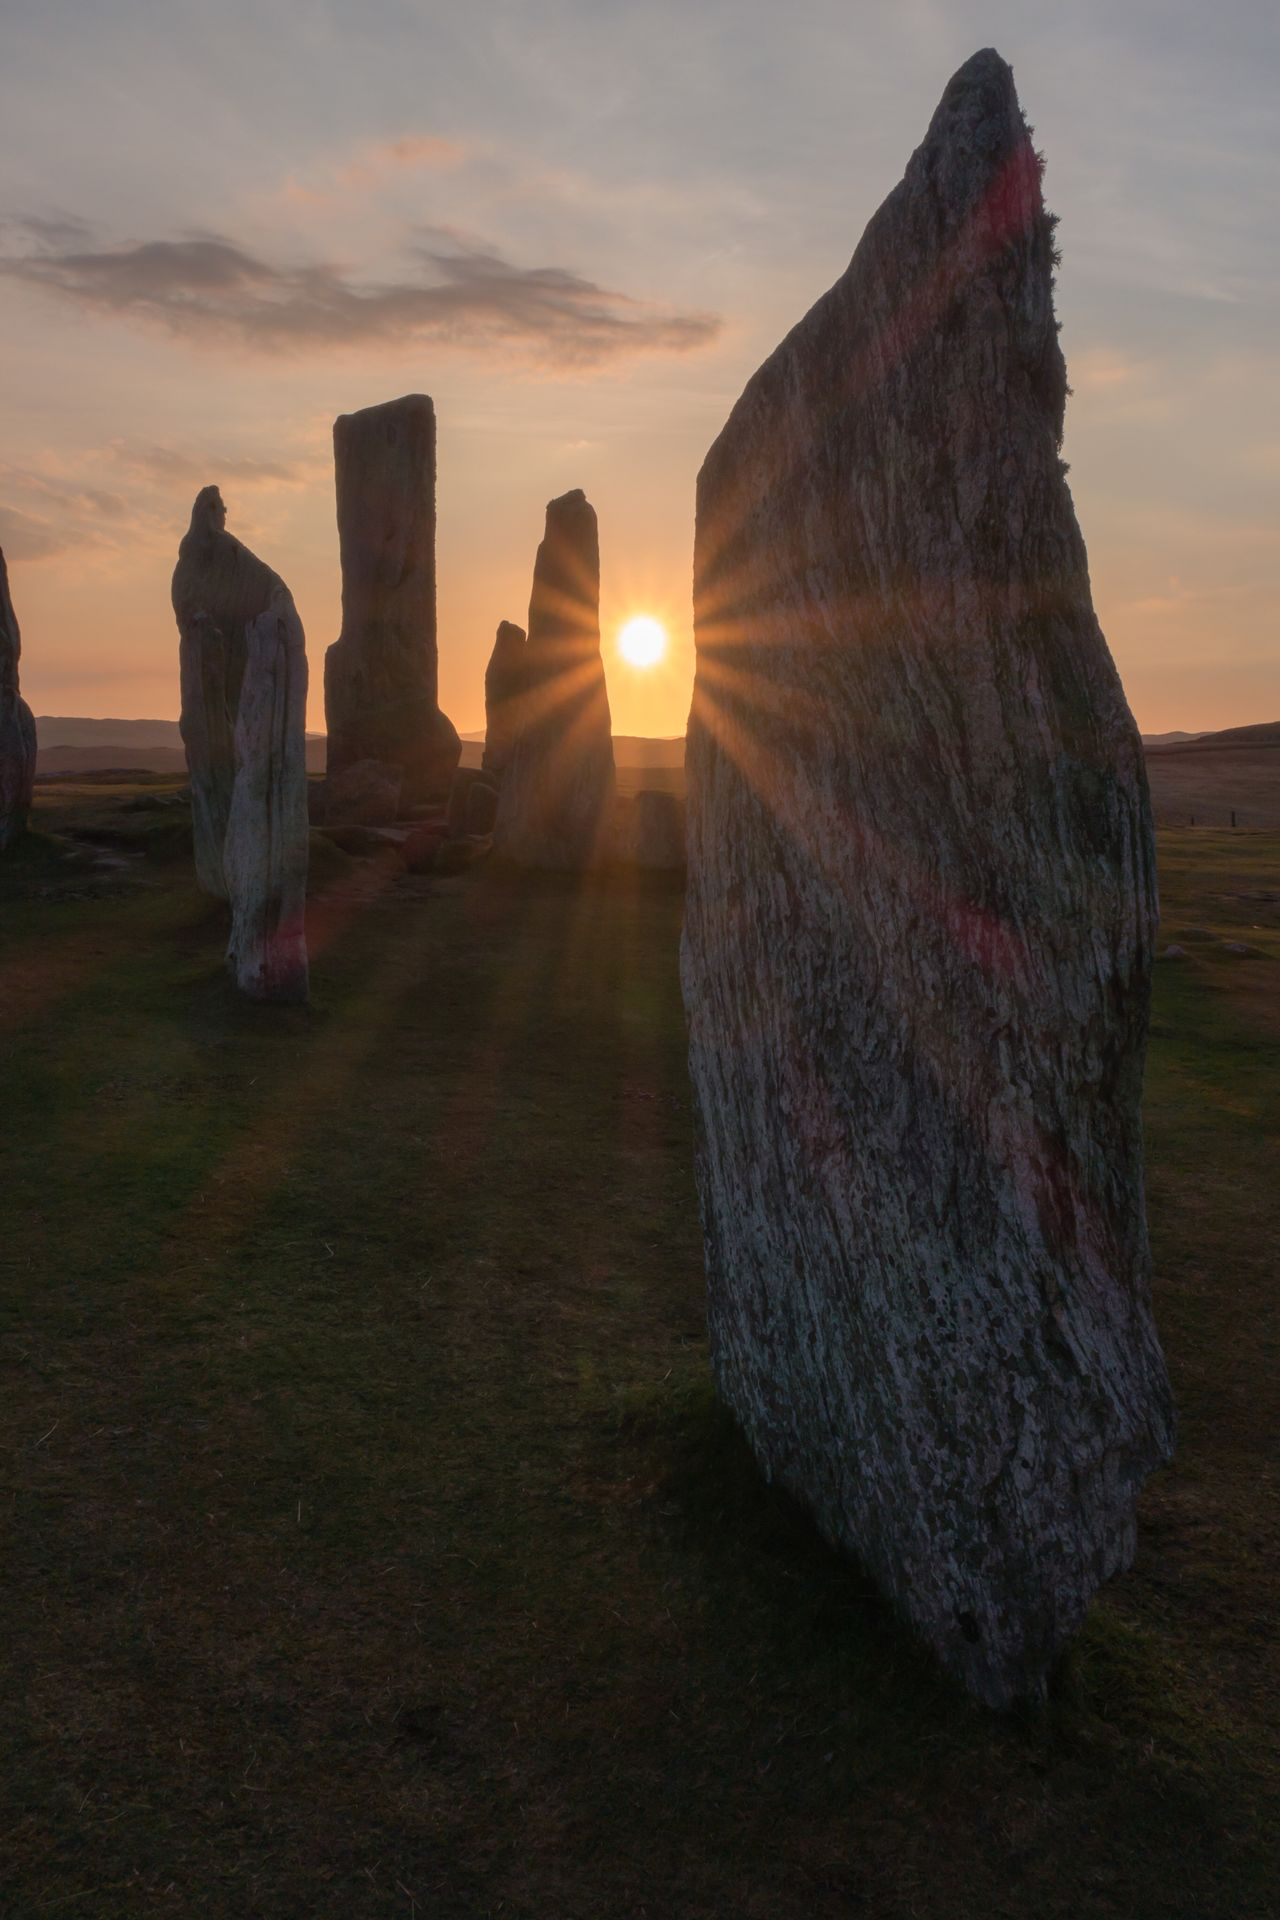 Sunset Sky Tranquility Nature Beauty In Nature Tranquil Scene Outdoors No People Rock - Object Sun Scenics Travel Destinations Sunbeam Landscape Day Sunrays Lens Flare Standing Stones Scotland Tourism Travel Travel Photography Landscape_photography Ancient Civilization Historic